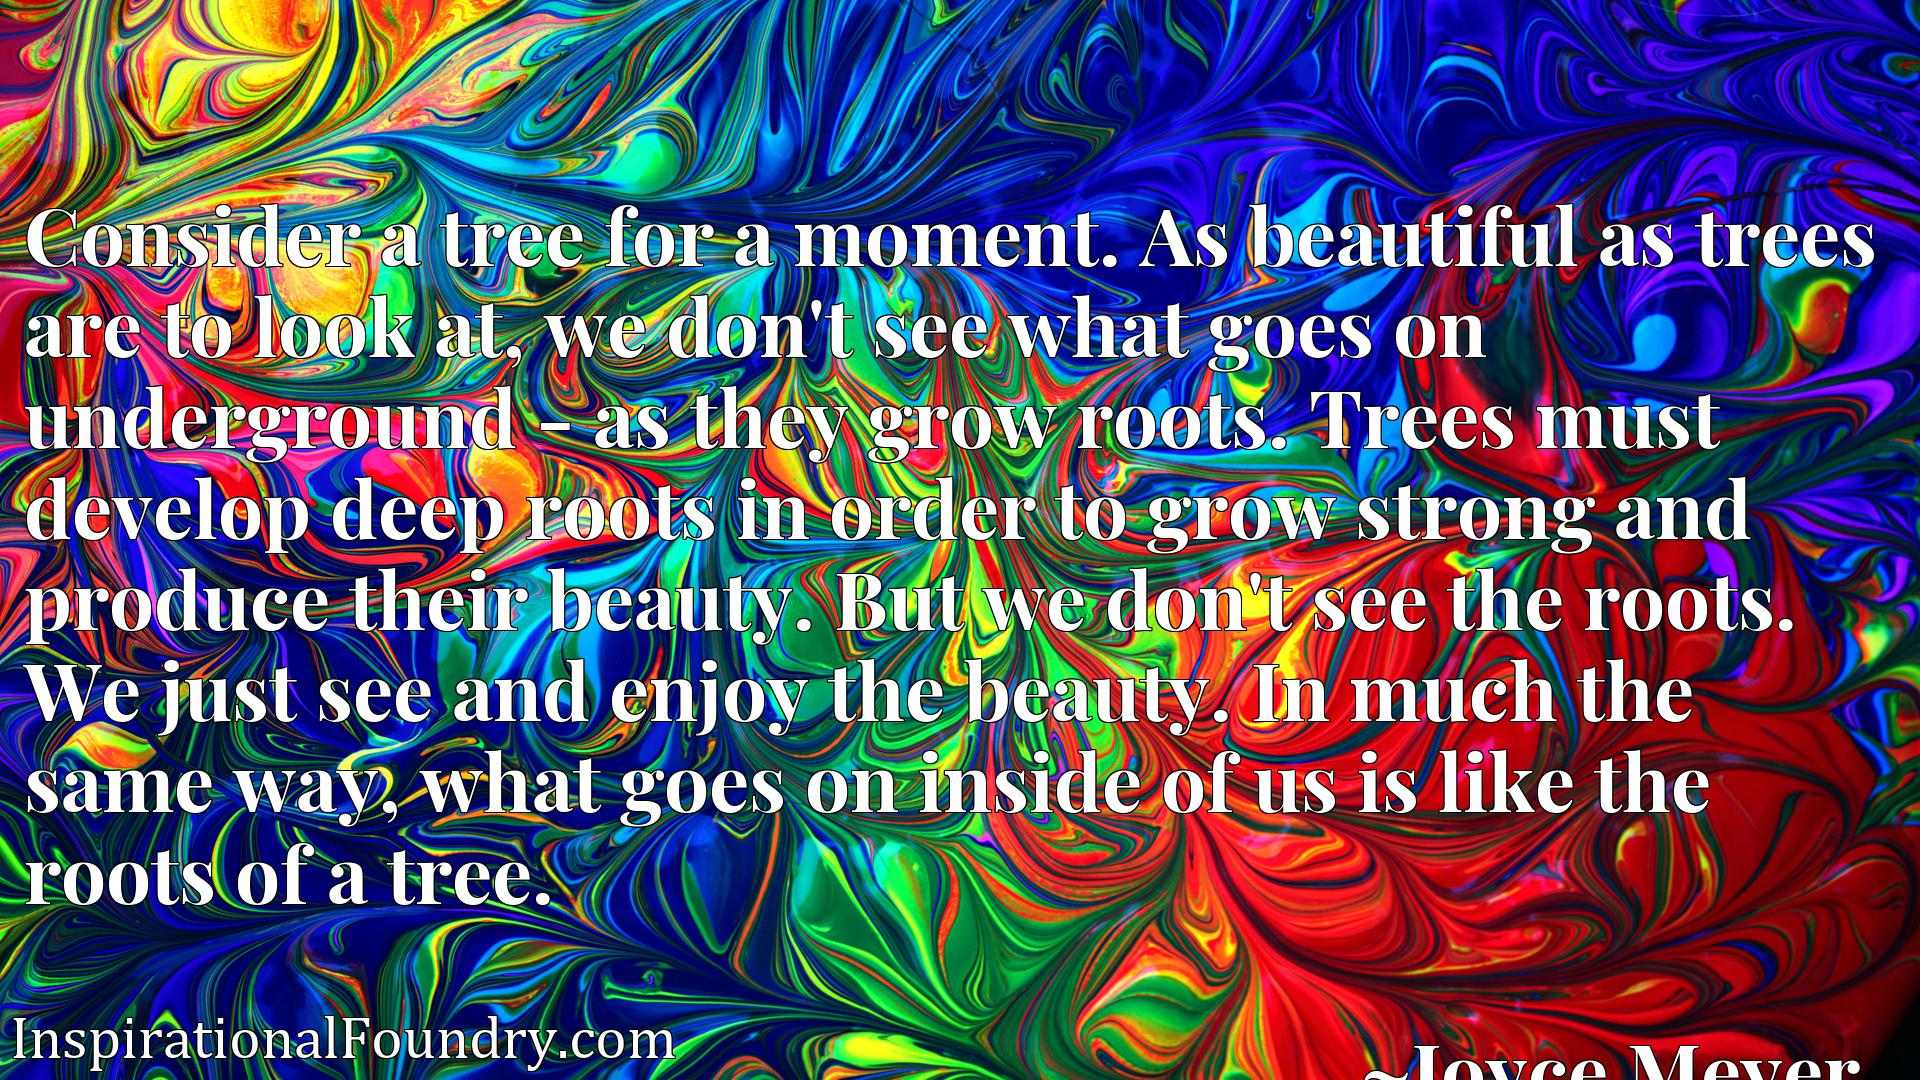 Consider a tree for a moment. As beautiful as trees are to look at, we don't see what goes on underground - as they grow roots. Trees must develop deep roots in order to grow strong and produce their beauty. But we don't see the roots. We just see and enjoy the beauty. In much the same way, what goes on inside of us is like the roots of a tree.